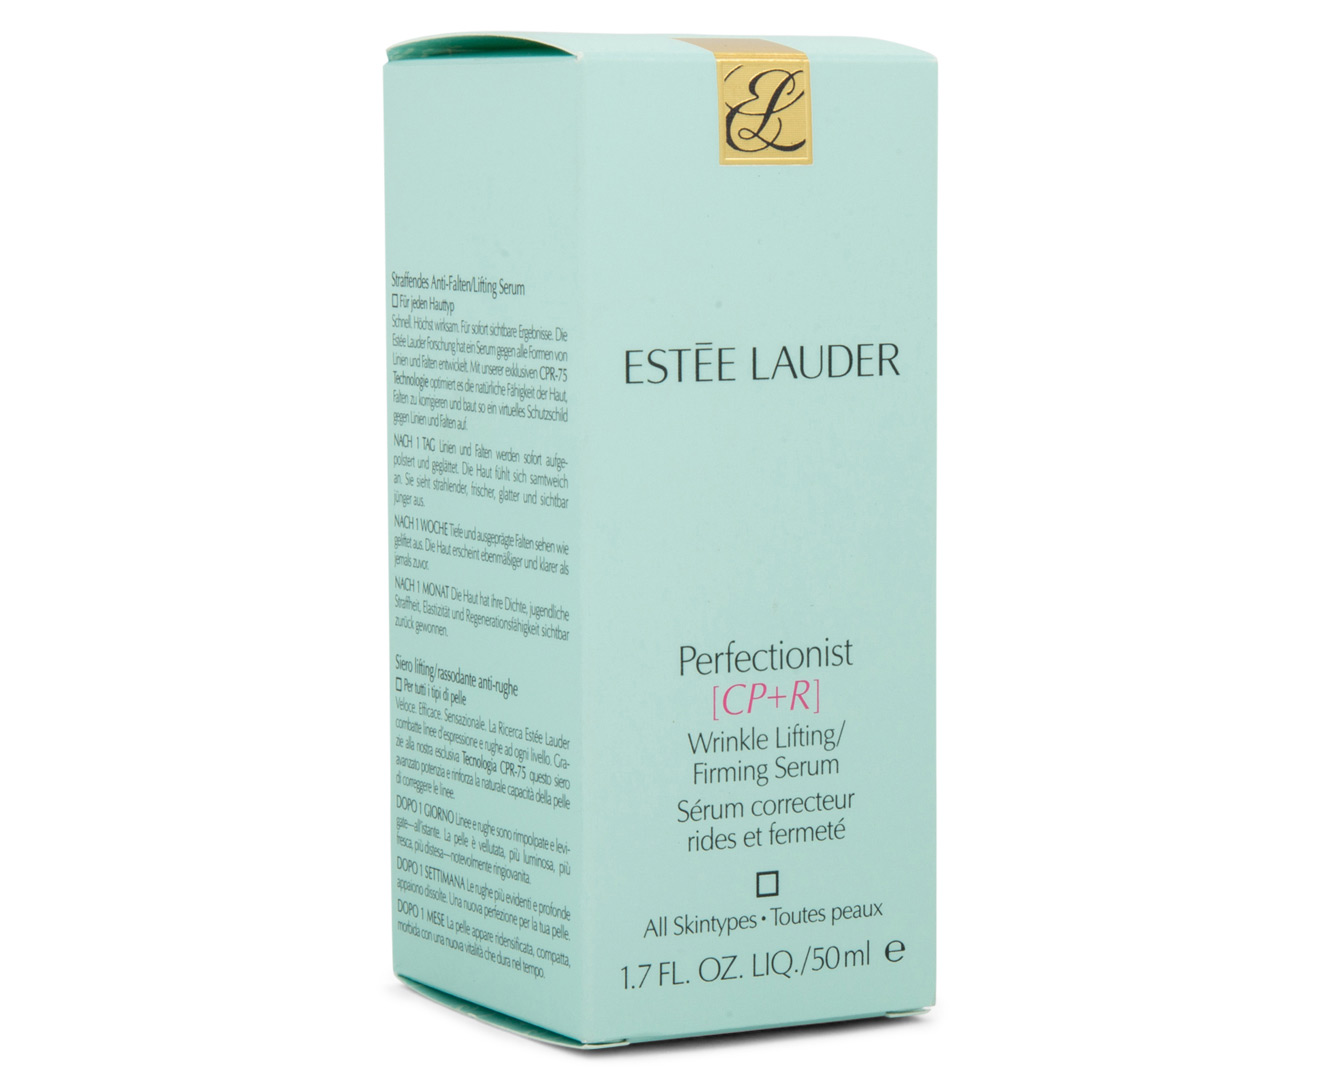 Este Lauder Perfectionist Wrinkle Lifting Serum 50ml Estee